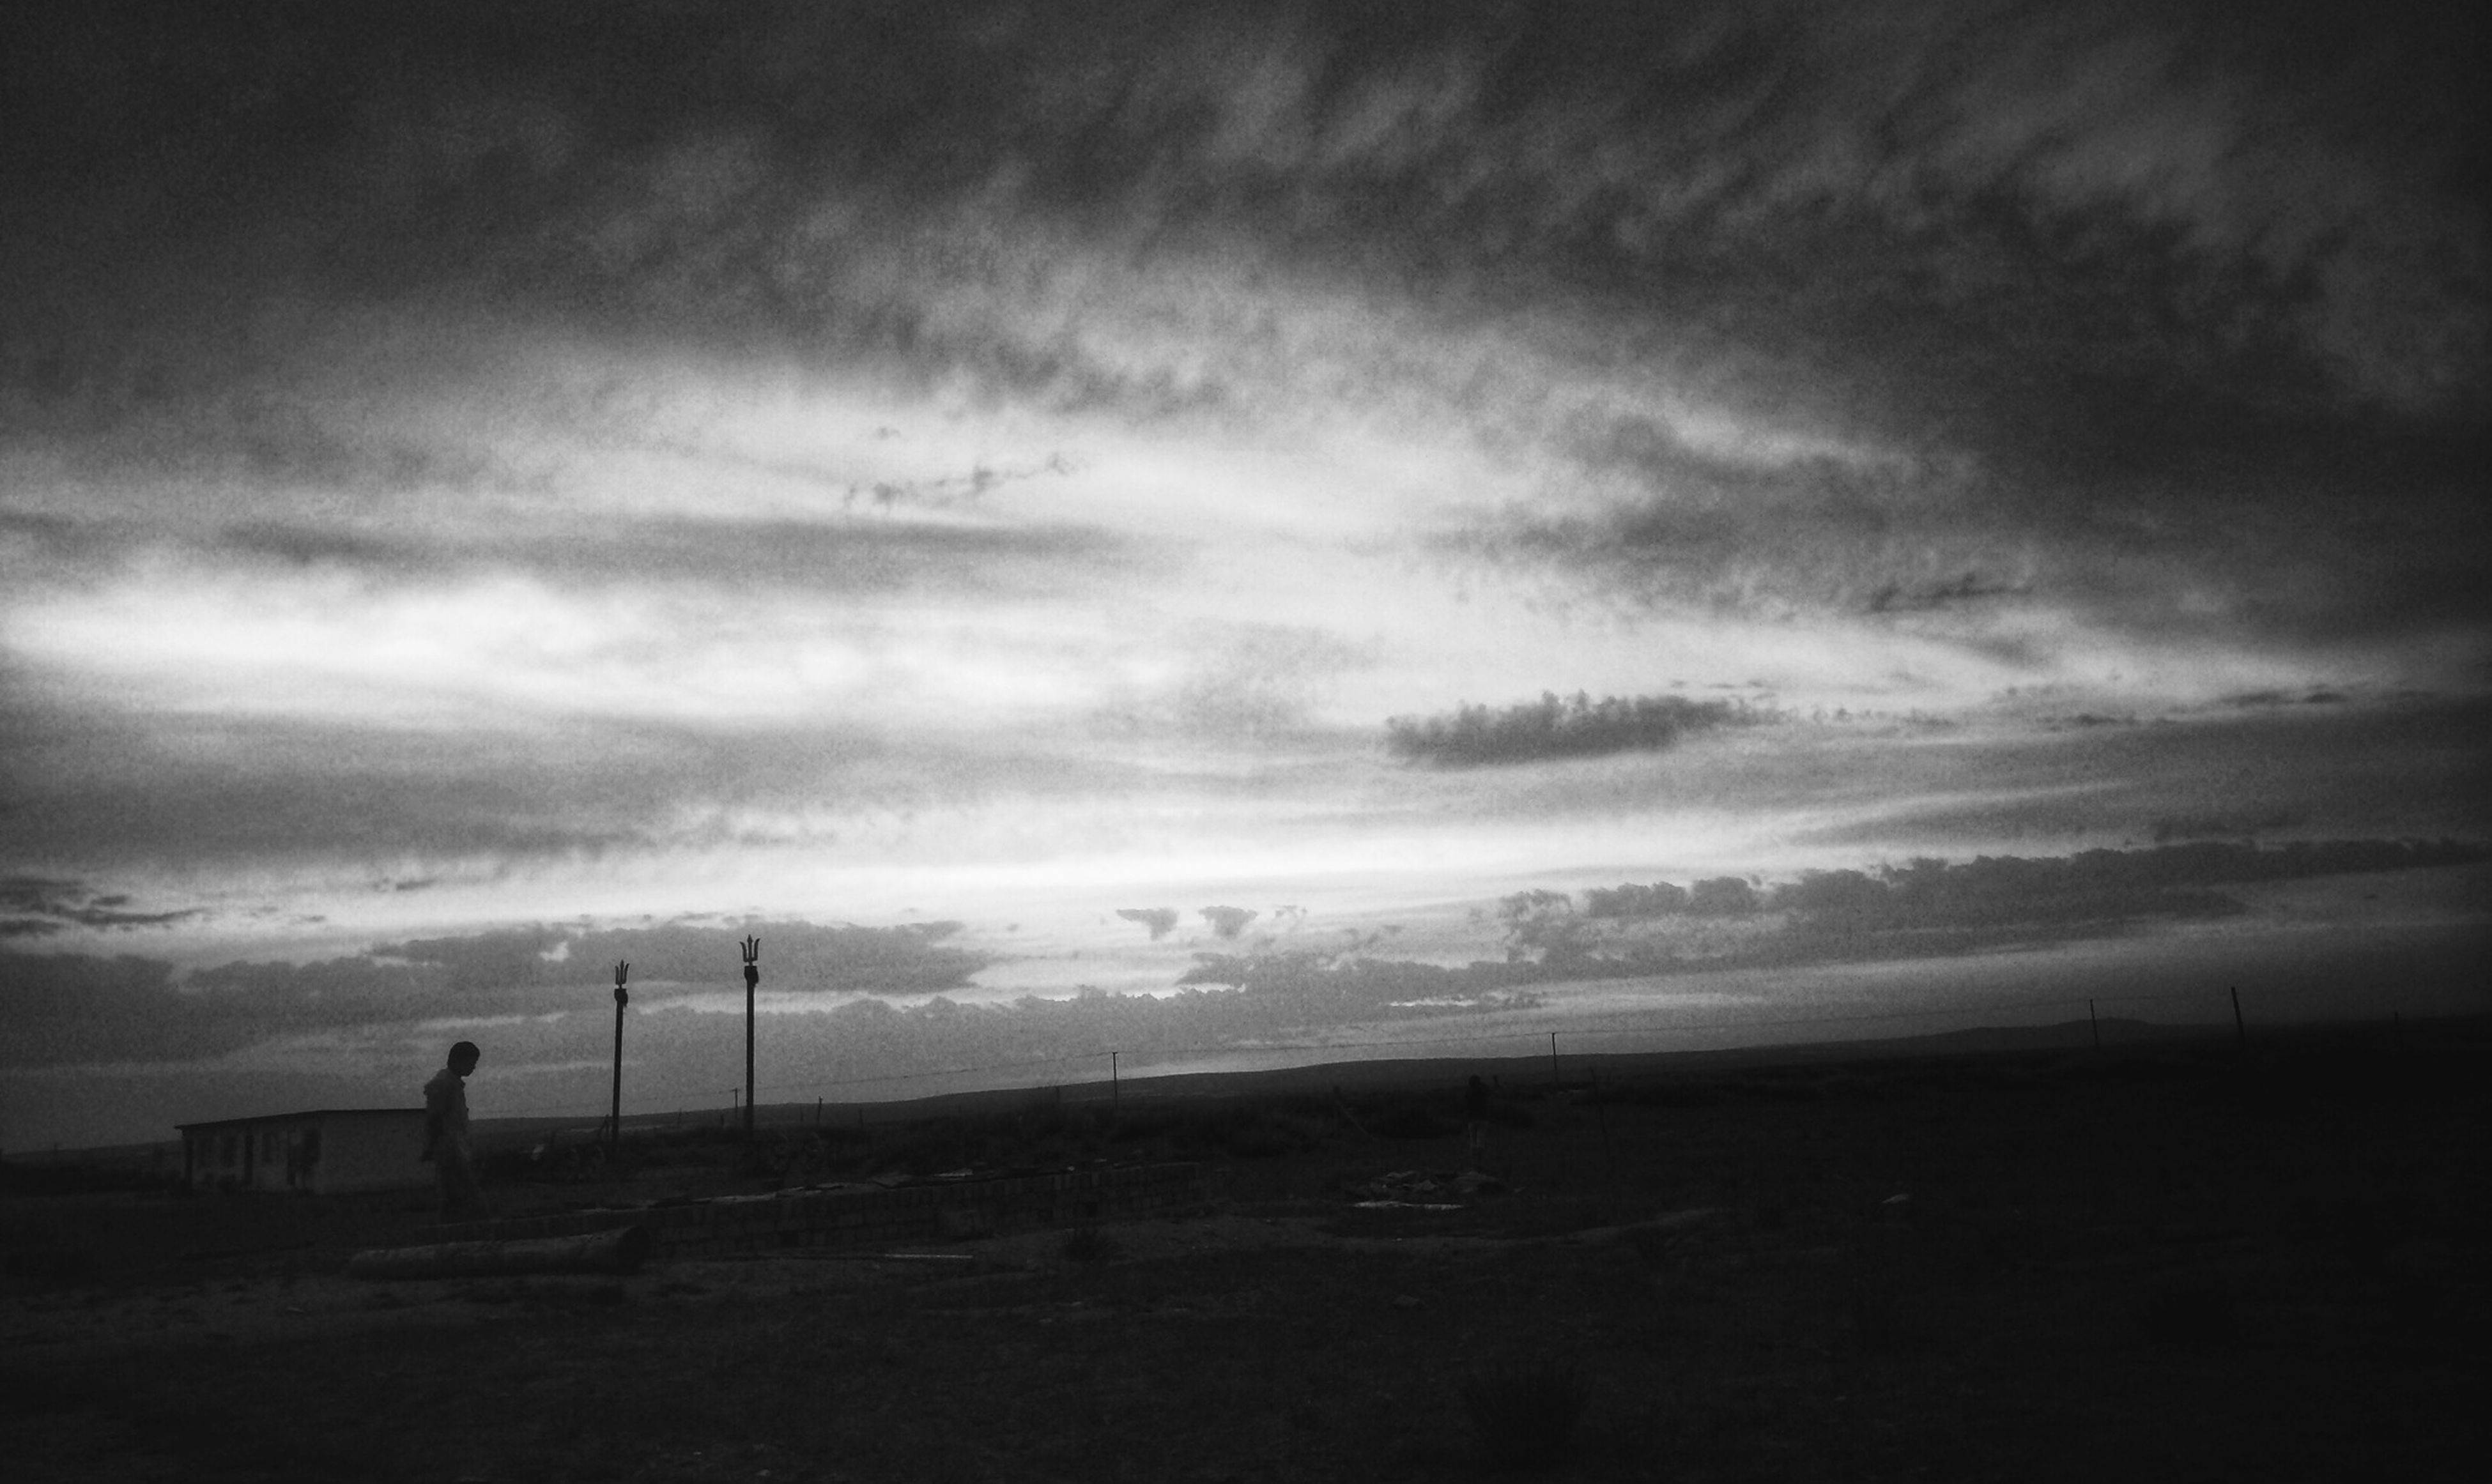 sky, cloud - sky, tranquility, landscape, tranquil scene, cloudy, scenics, field, nature, beauty in nature, weather, overcast, cloud, dusk, silhouette, beach, outdoors, horizon over land, no people, remote